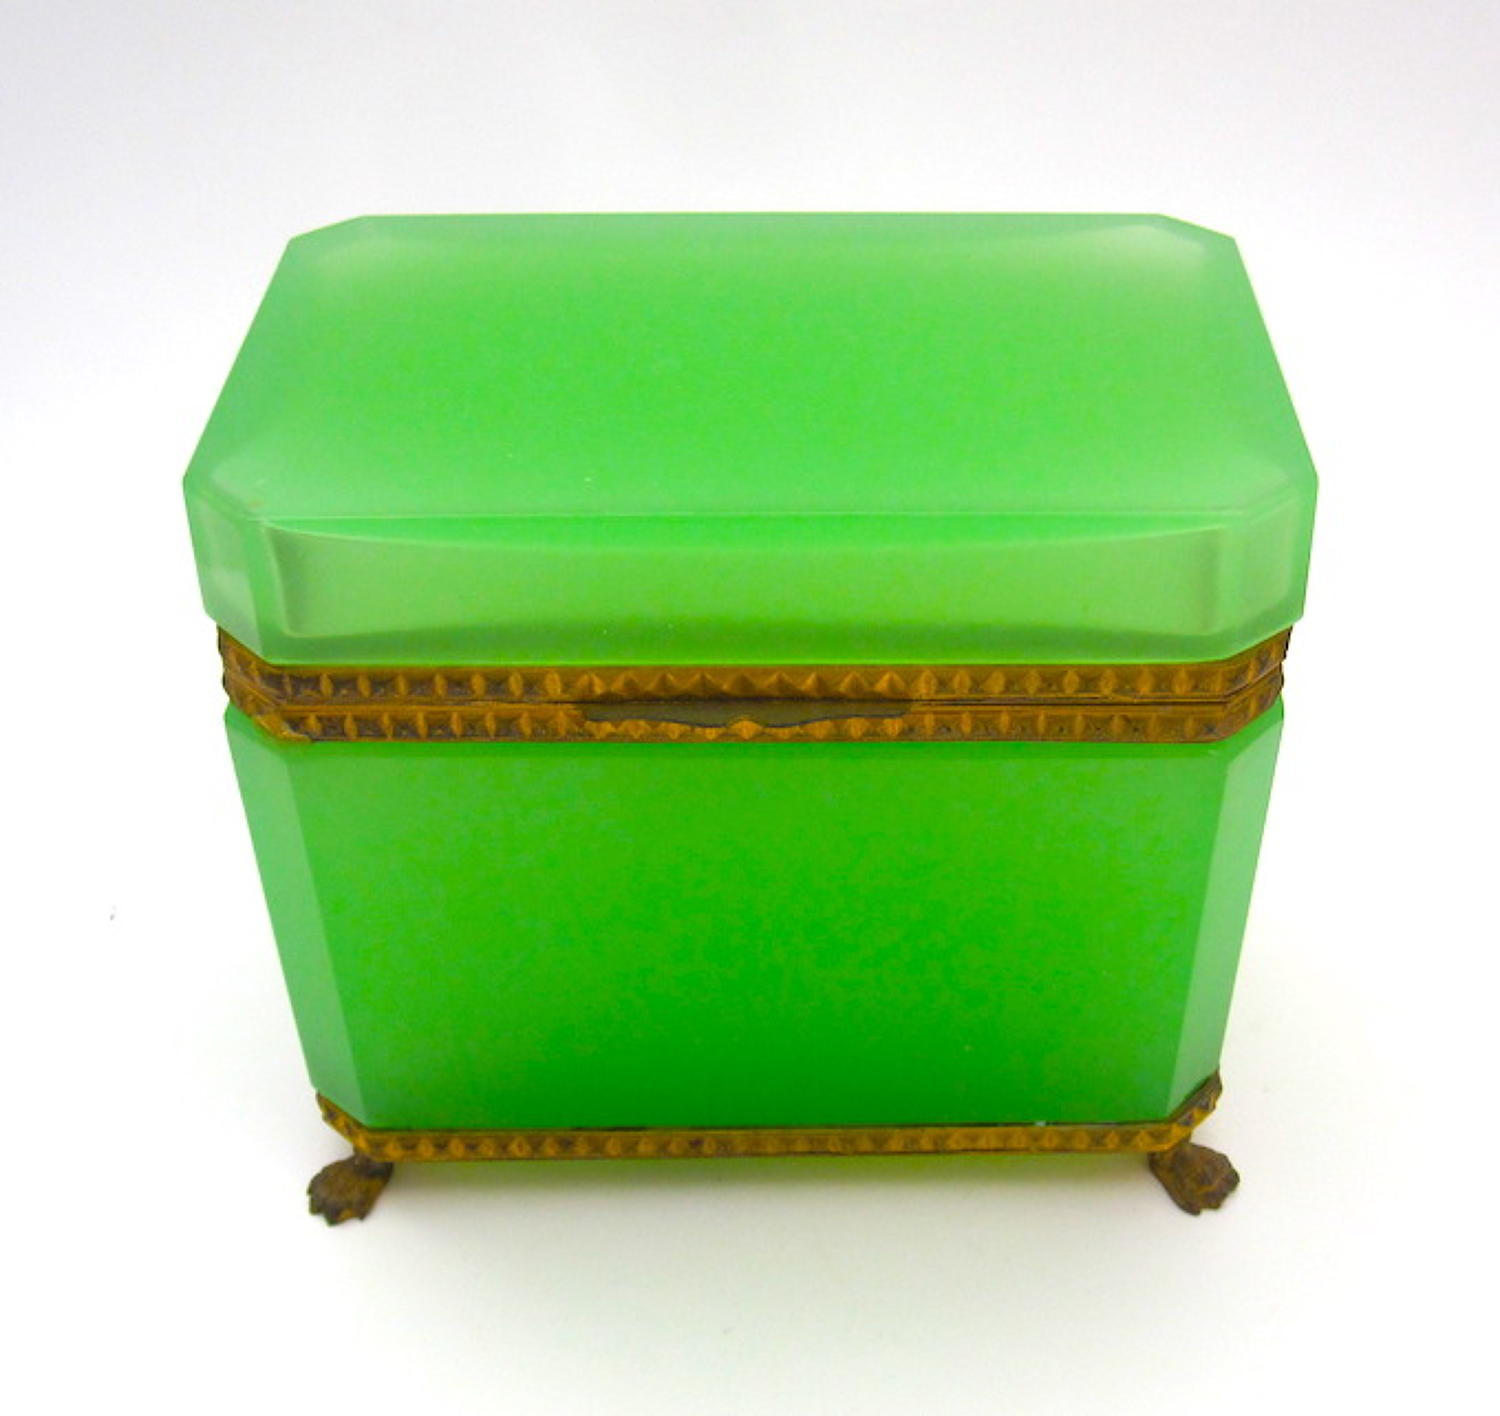 Antique Green Opaline Glass Casket Box